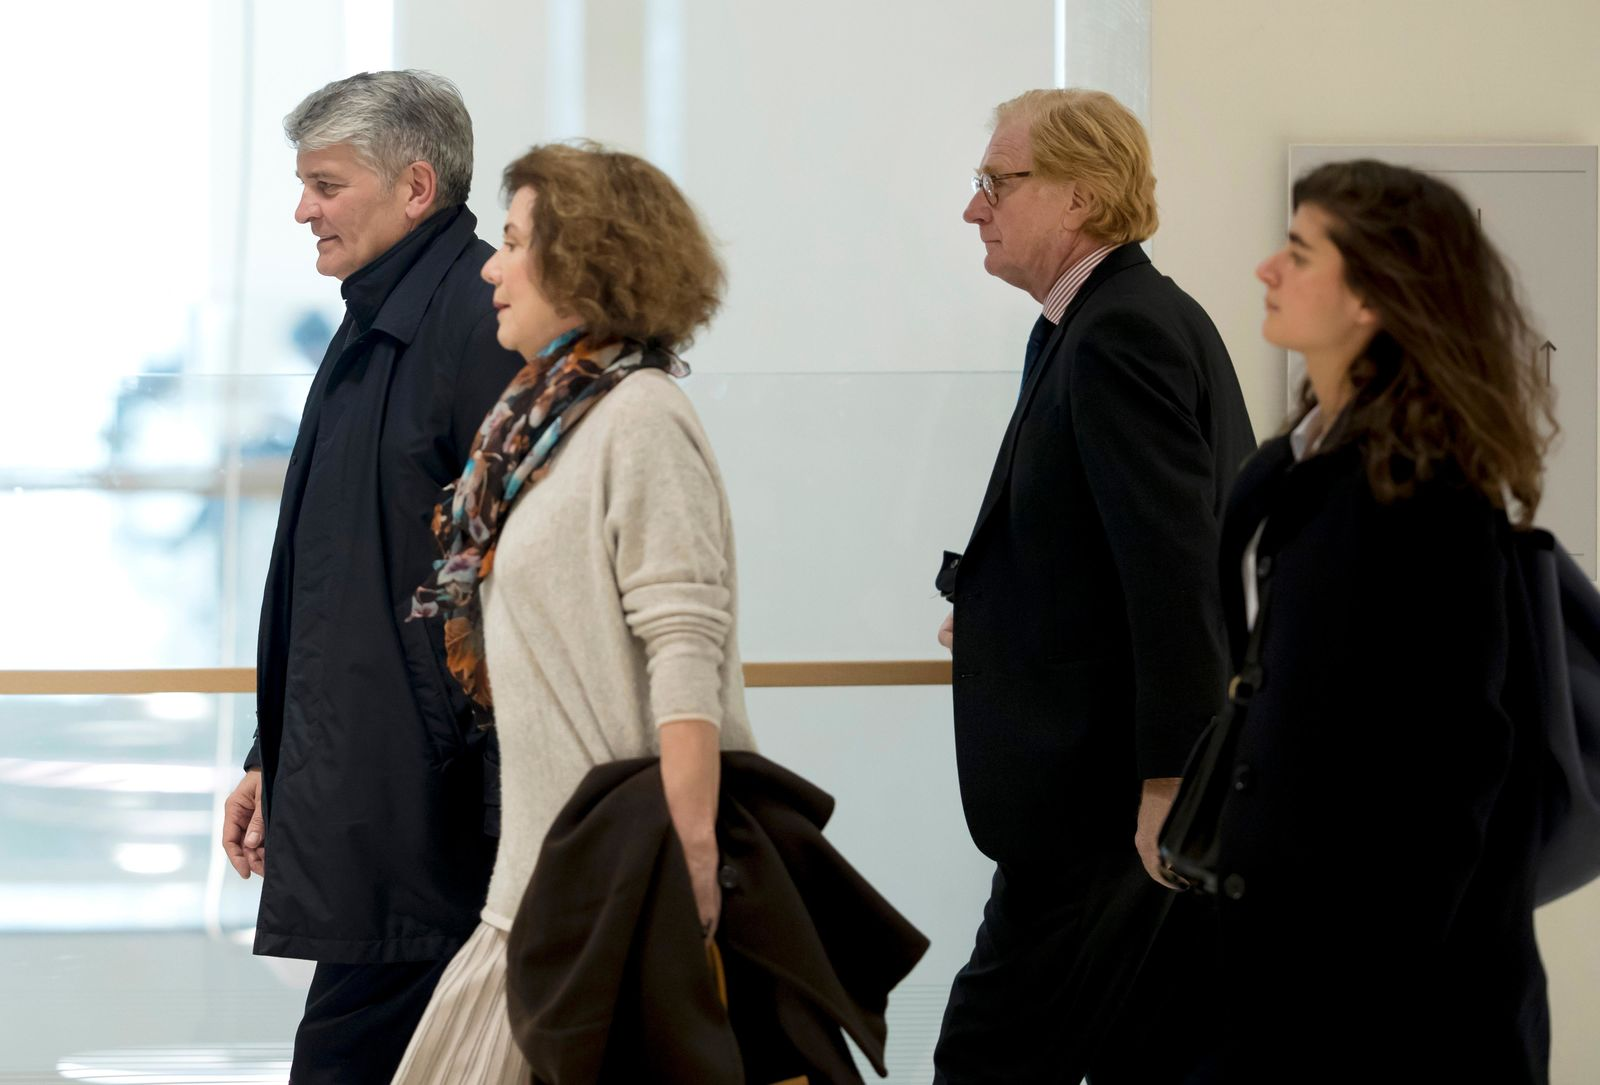 Former CEO of Global Wealth Management and Business Banking at UBS AG Raoul Weil, left, his wife, 2nd left, former General Director of UBS France Patrick de Fayet, 2nd right, and one member of their legal team arrive for the the Swiss bank's trial at the Paris courthouse in Paris, France, Wednesday, Feb. 20, 2019. (AP Photo/Michel Euler)